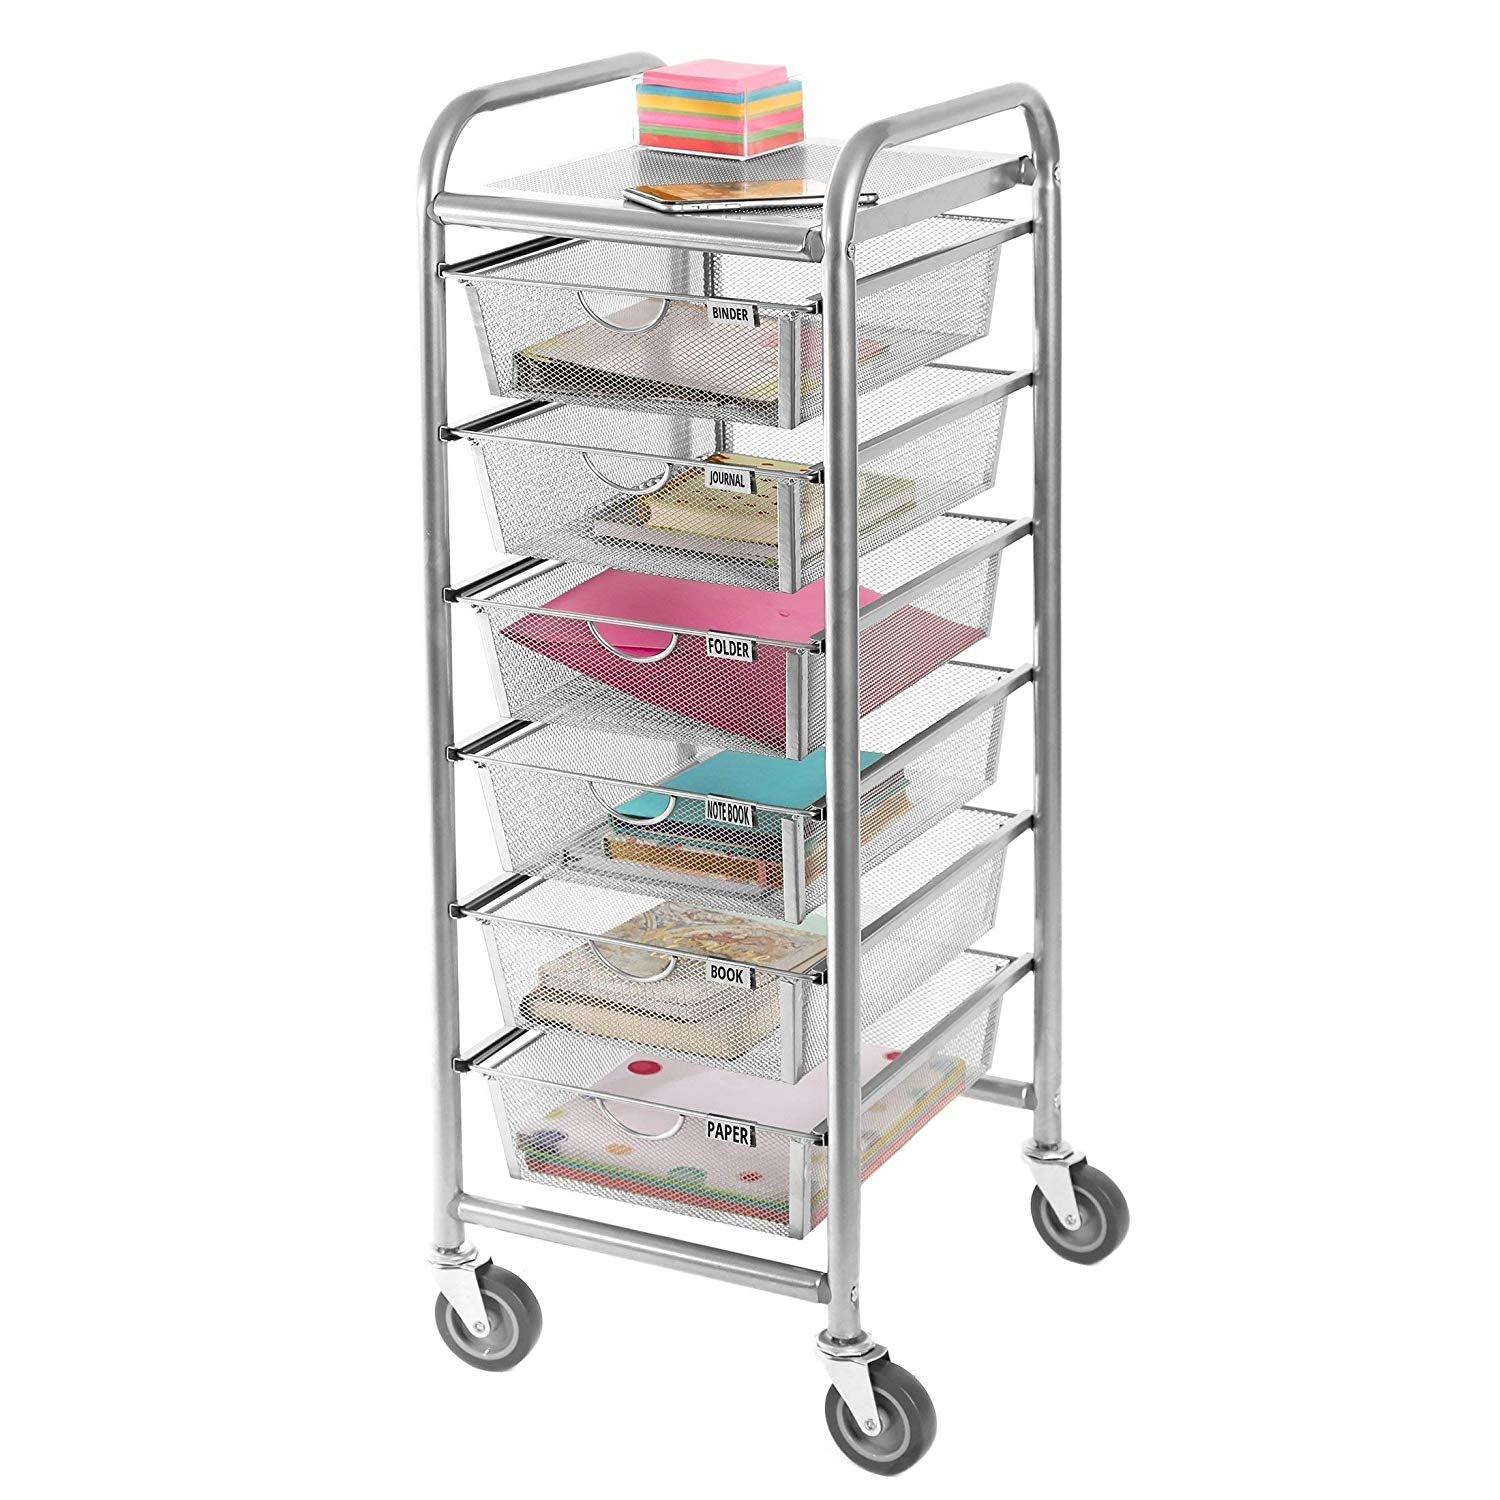 Silver 6 Drawer Organizer 12X38 Inch Large Storage Box Dorm Room Classroom Bedroom Tall Cart Drawer Decorative Modern Metal